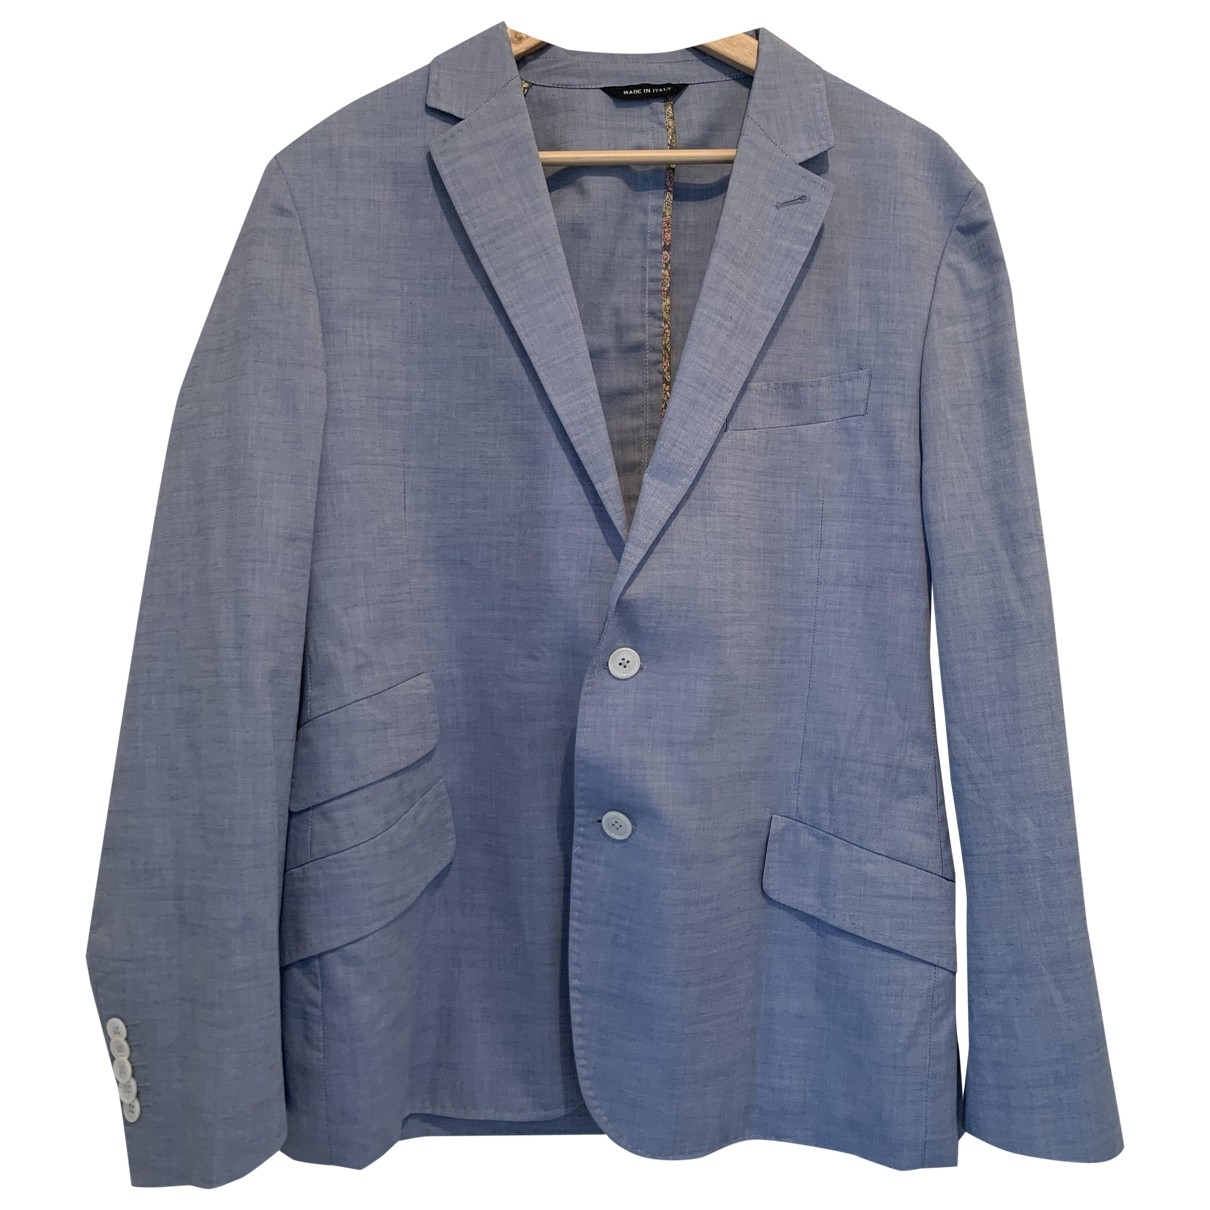 Paul Smith \N Blue Cotton jacket  for Men 44 IT